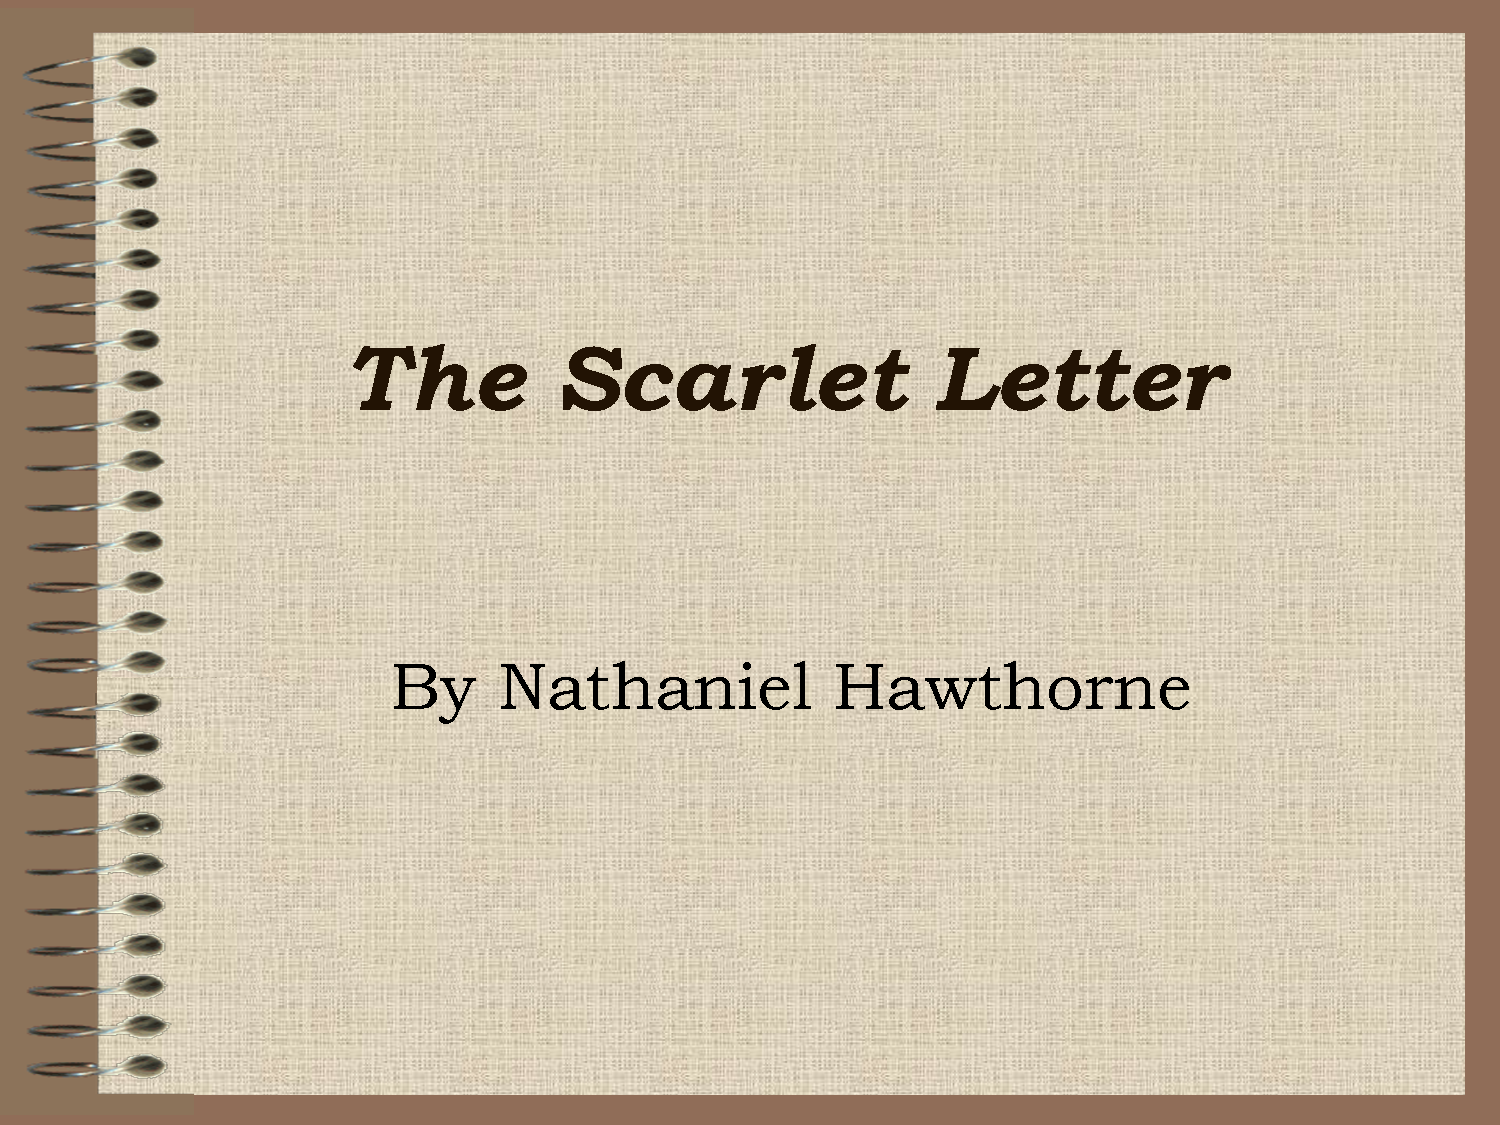 irony in scarlet letter Christian imagery in hawthorne's the scarlet letter in salem in 1692 also bears grim irony: introduces the scarlet letter with words that have the.